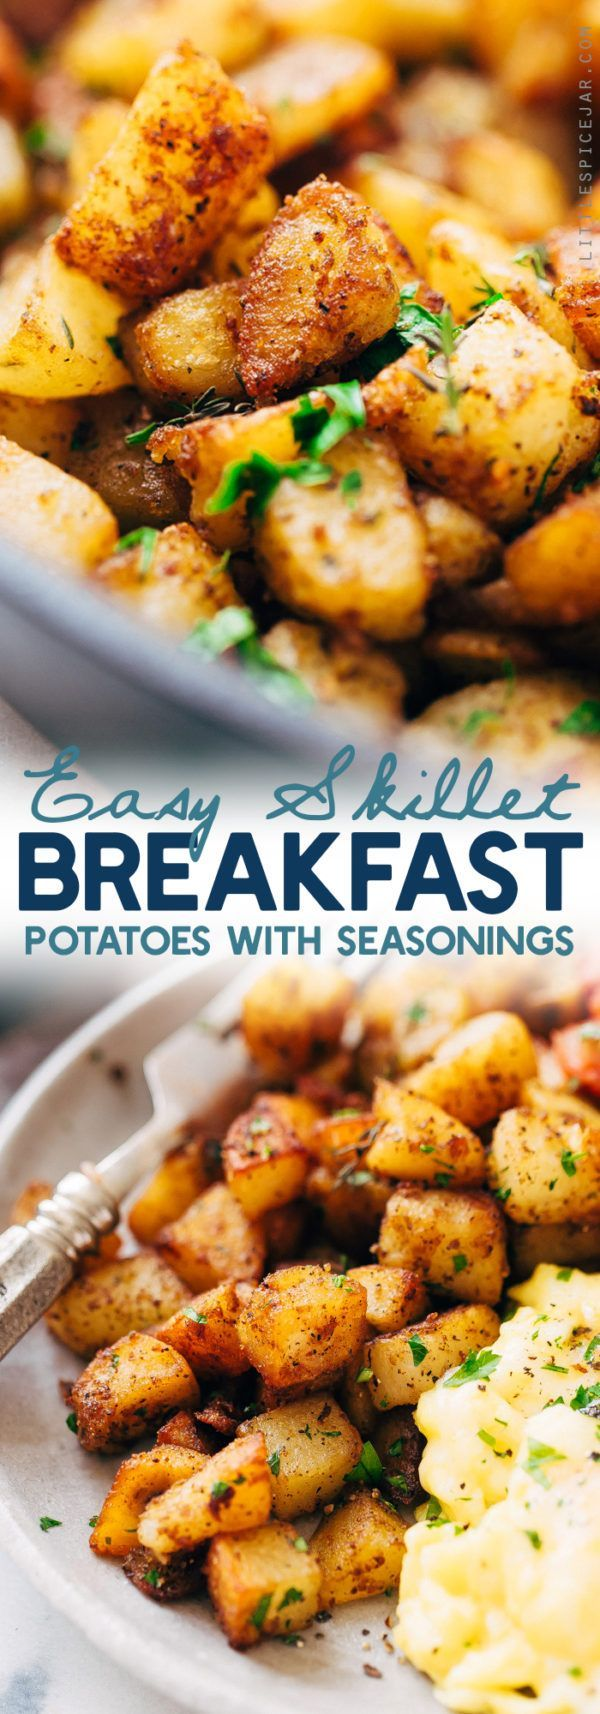 Easy Skillet Breakfast Potatoes  lightly crispy on the outside tender on the inside These breakfast potatoes are sure to be a hit  potato al horno asadas fritas recetas d...